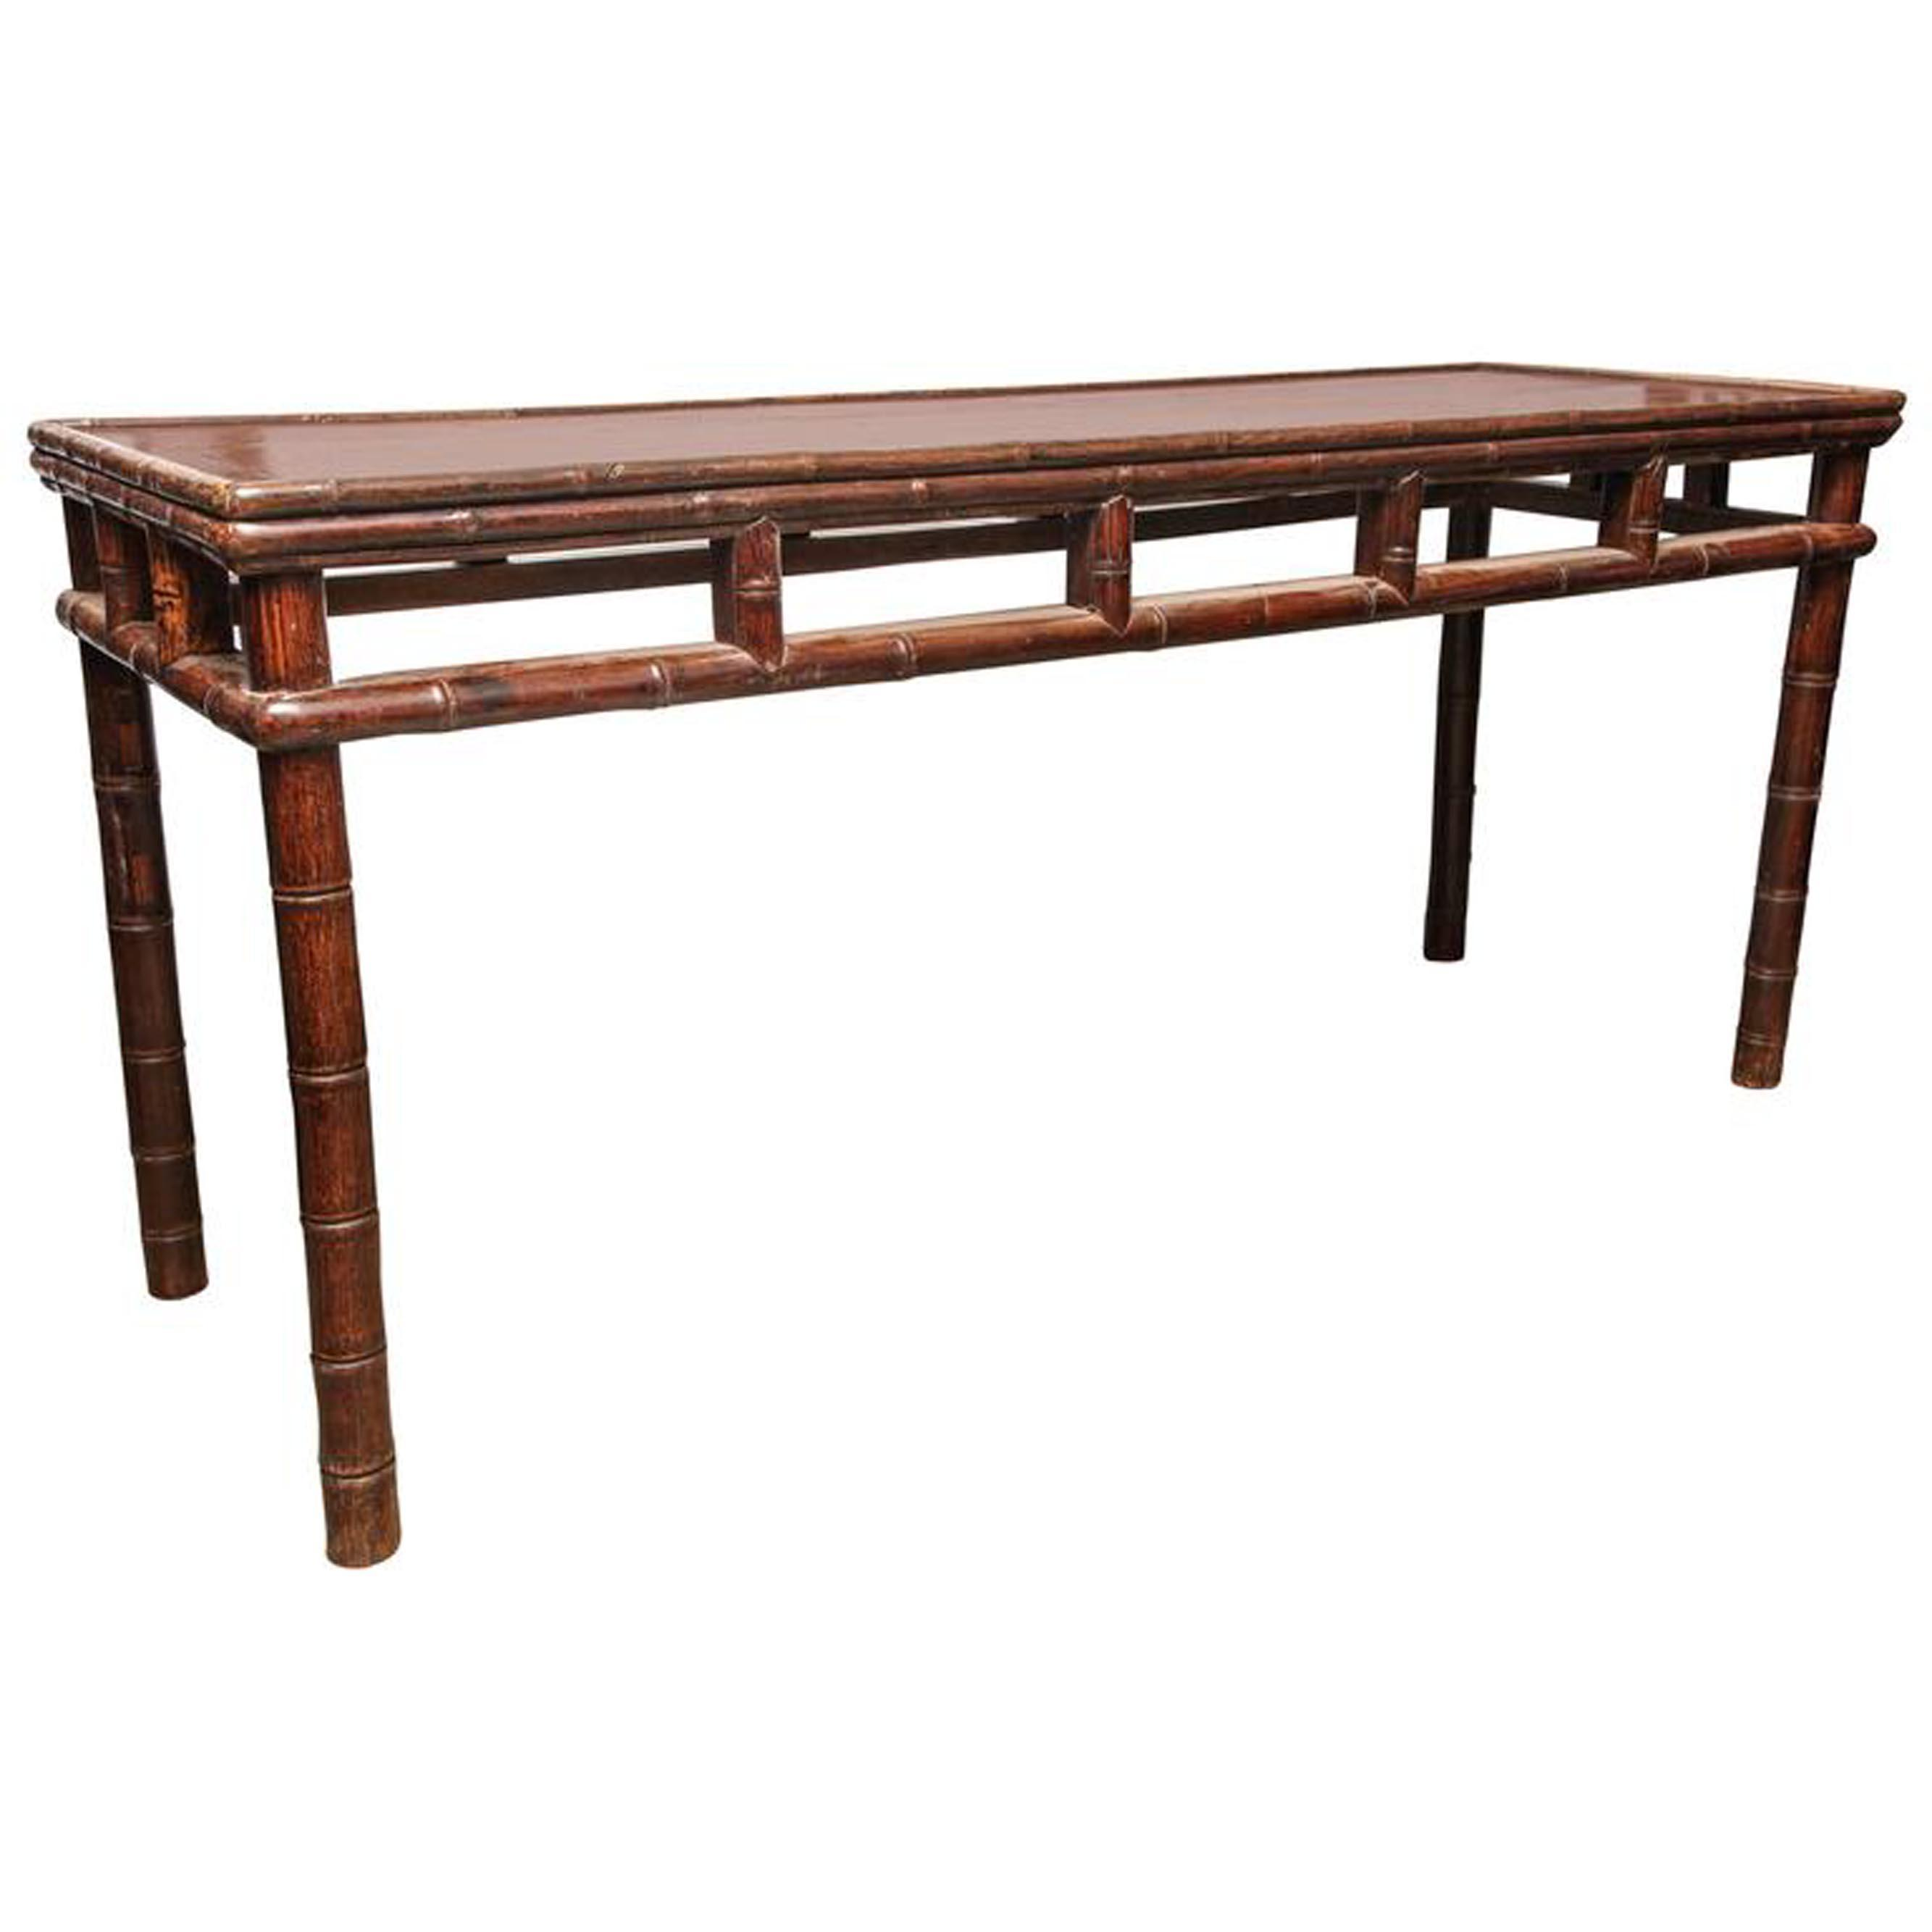 Real Wood Tables Sale